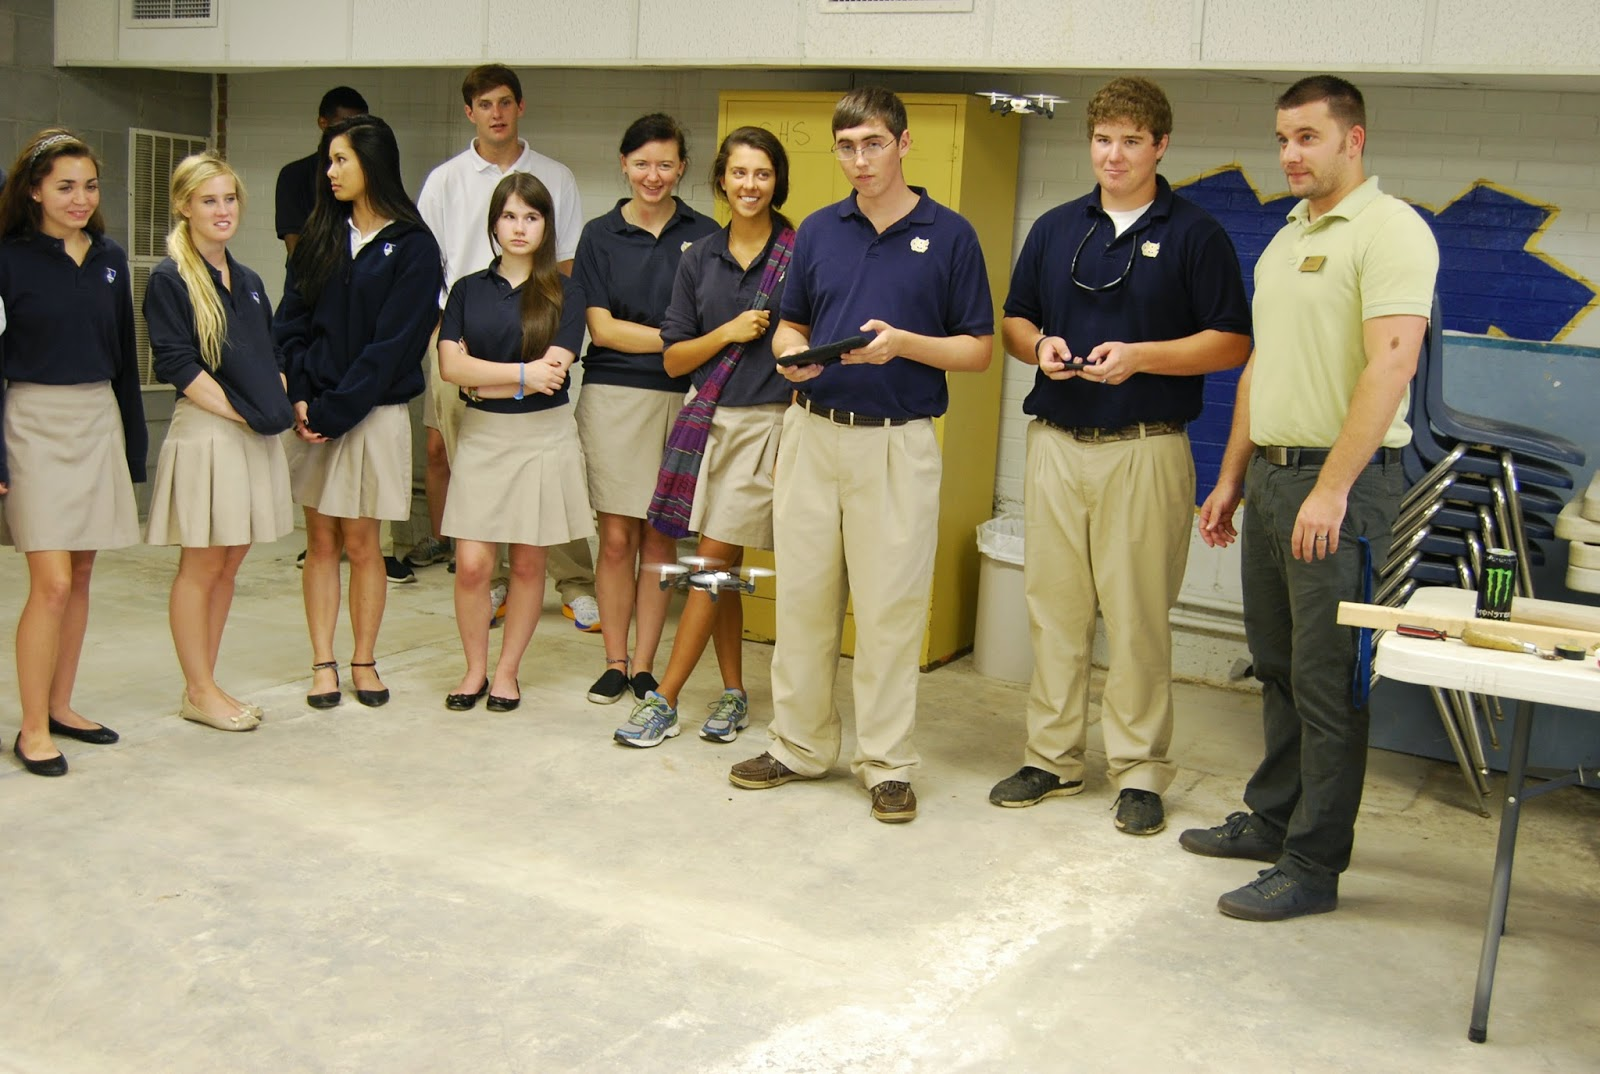 THE MONTGOMERY CATHOLIC ENGINEERING CLASS LEARNS HOW ACCELEROMETERS AND GYROSCOPES CAN BE USED IN ROBOTICS. 1